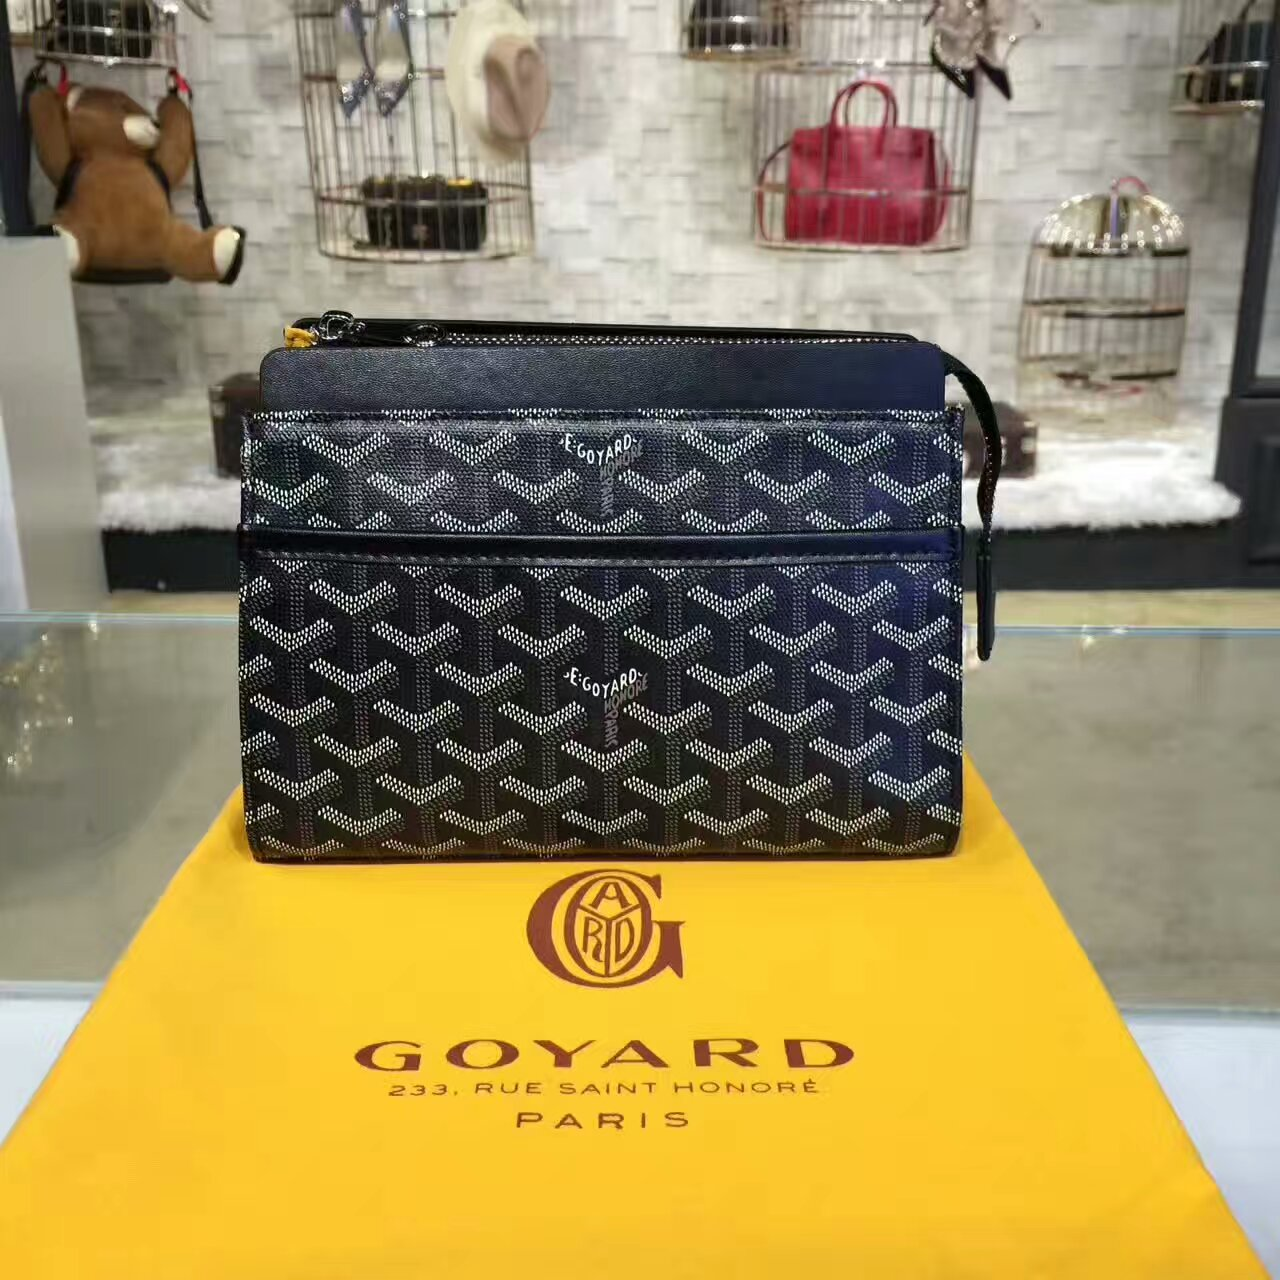 Goyard Cosmetic Bag Black Toiletry Case